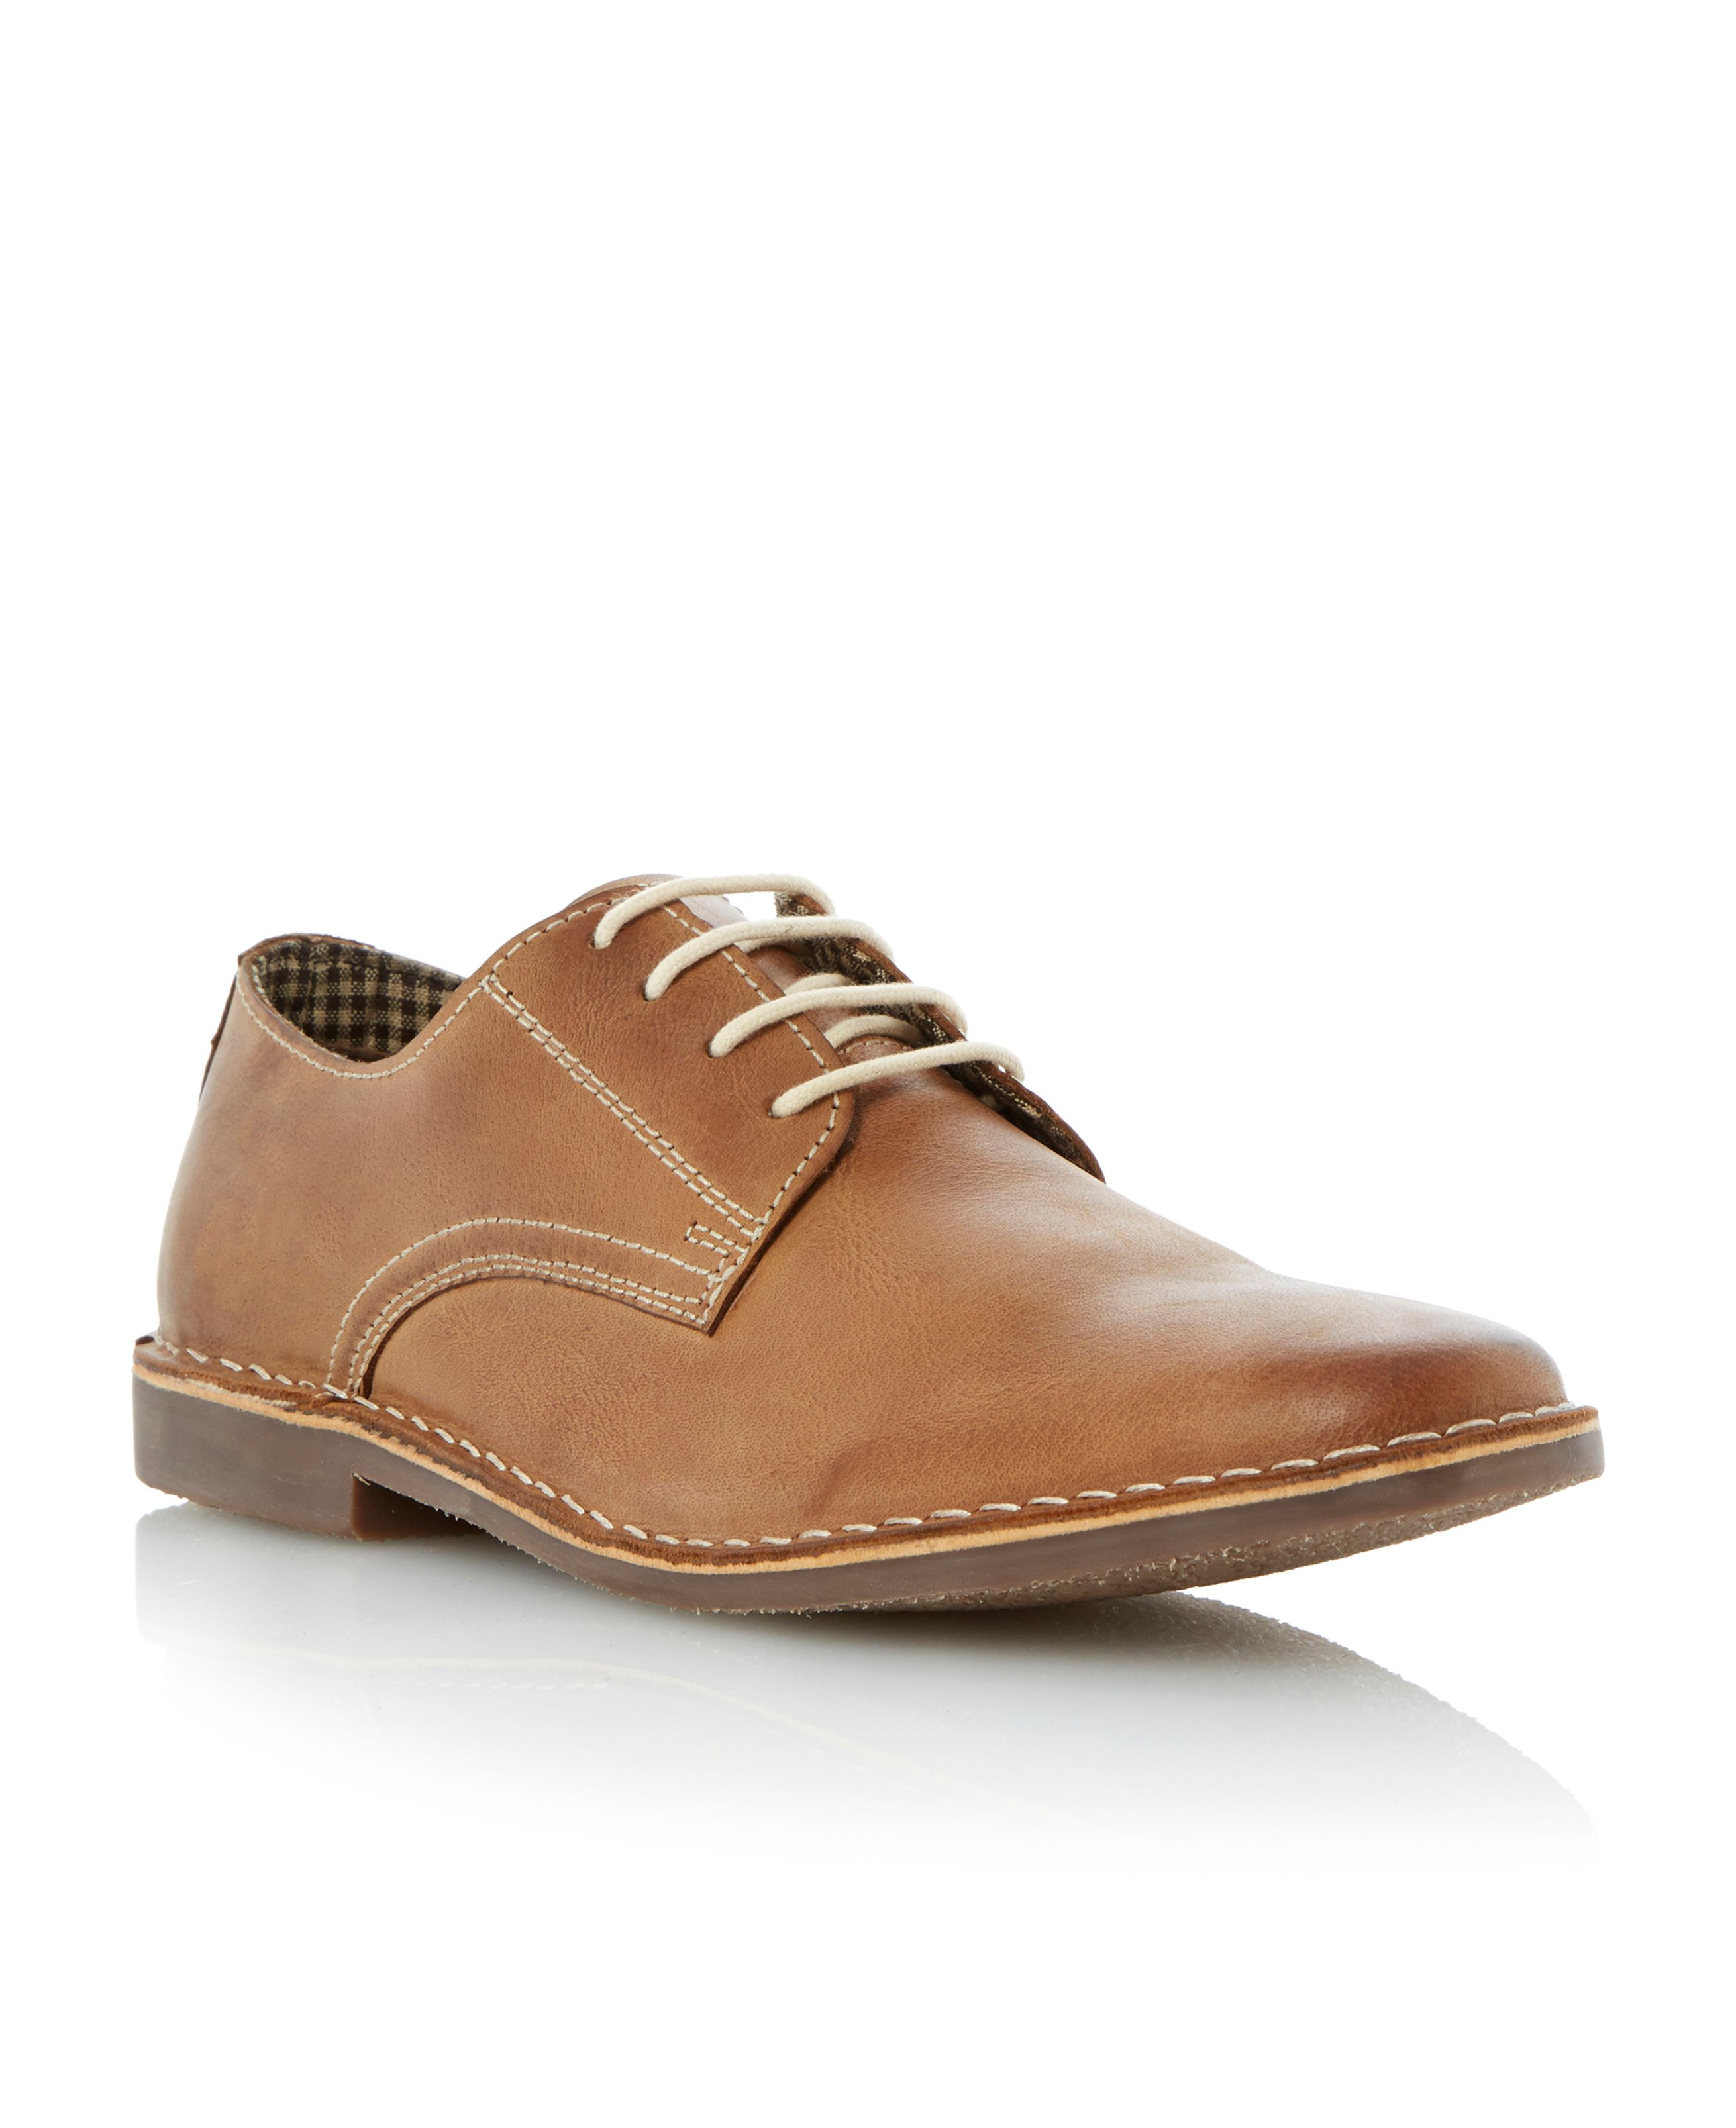 Broadhurst lace up desert shoes